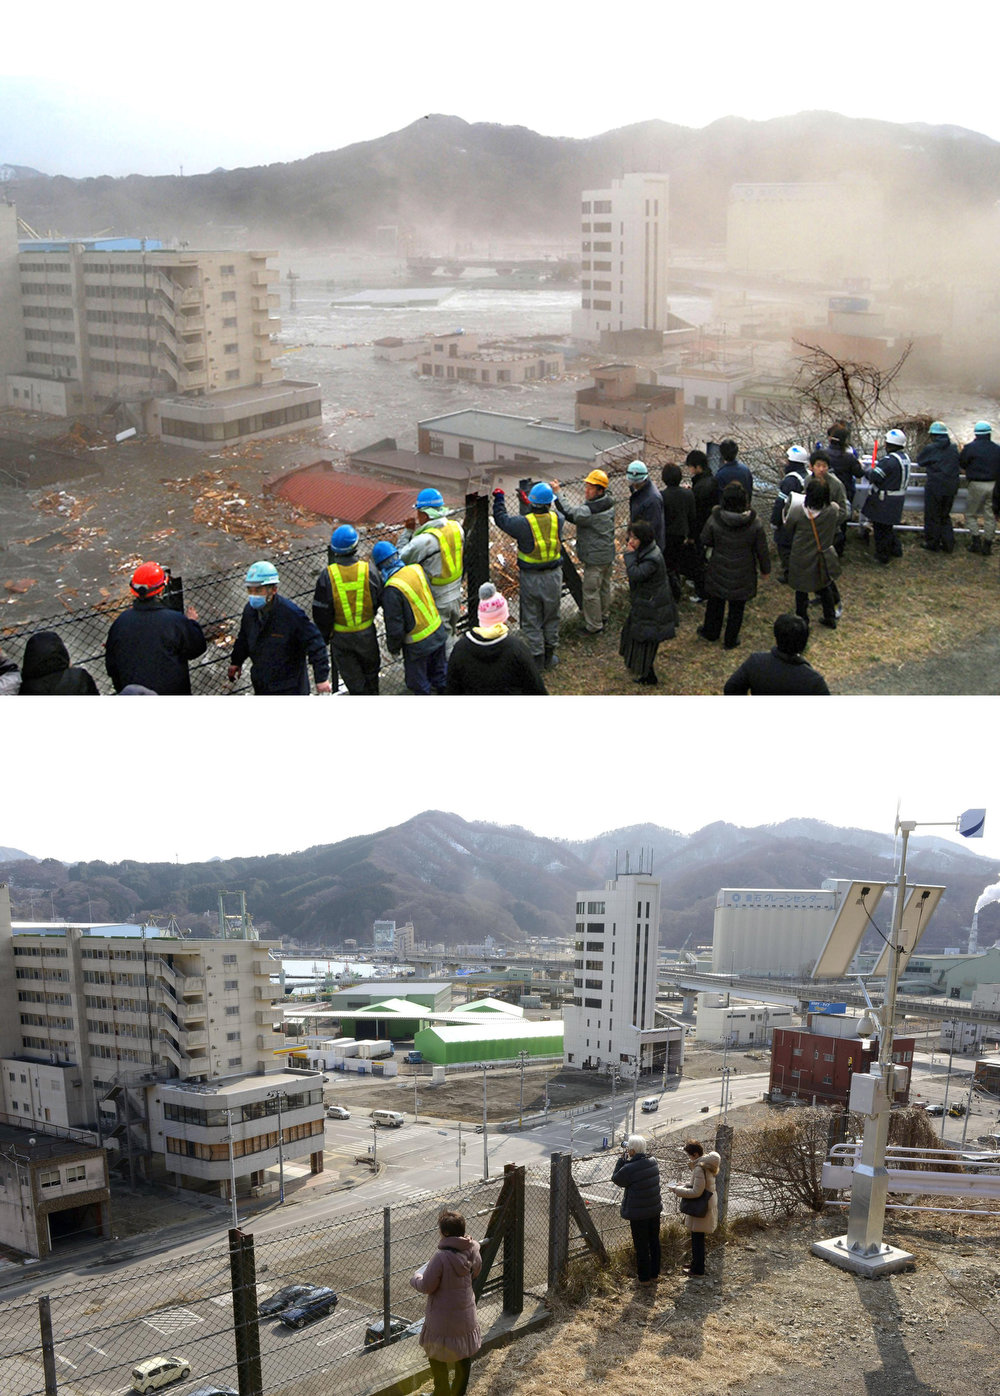 . This combination photo taken March 11, 2011, top, by Kamaishi City, and Wednesday, Feb. 27, 2013 by Kyodo News, shows a view of Kamaishi, Iwate prefecture. Monday, March 11, 2013 will mark the 2-year anniversary of the earthquake and tsunami which devastated the northeastern Pacific coast of Japan. Japan\'s progress in rebuilding from the mountain of water that thundered over coastal sea walls, sweeping entire communities away and killing nearly 19,000 people, is mainly measured in barren foundations and empty spaces. Clearing of forests on higher ground to make space for relocation of survivors has barely begun. (AP Photo/Kyodo News)